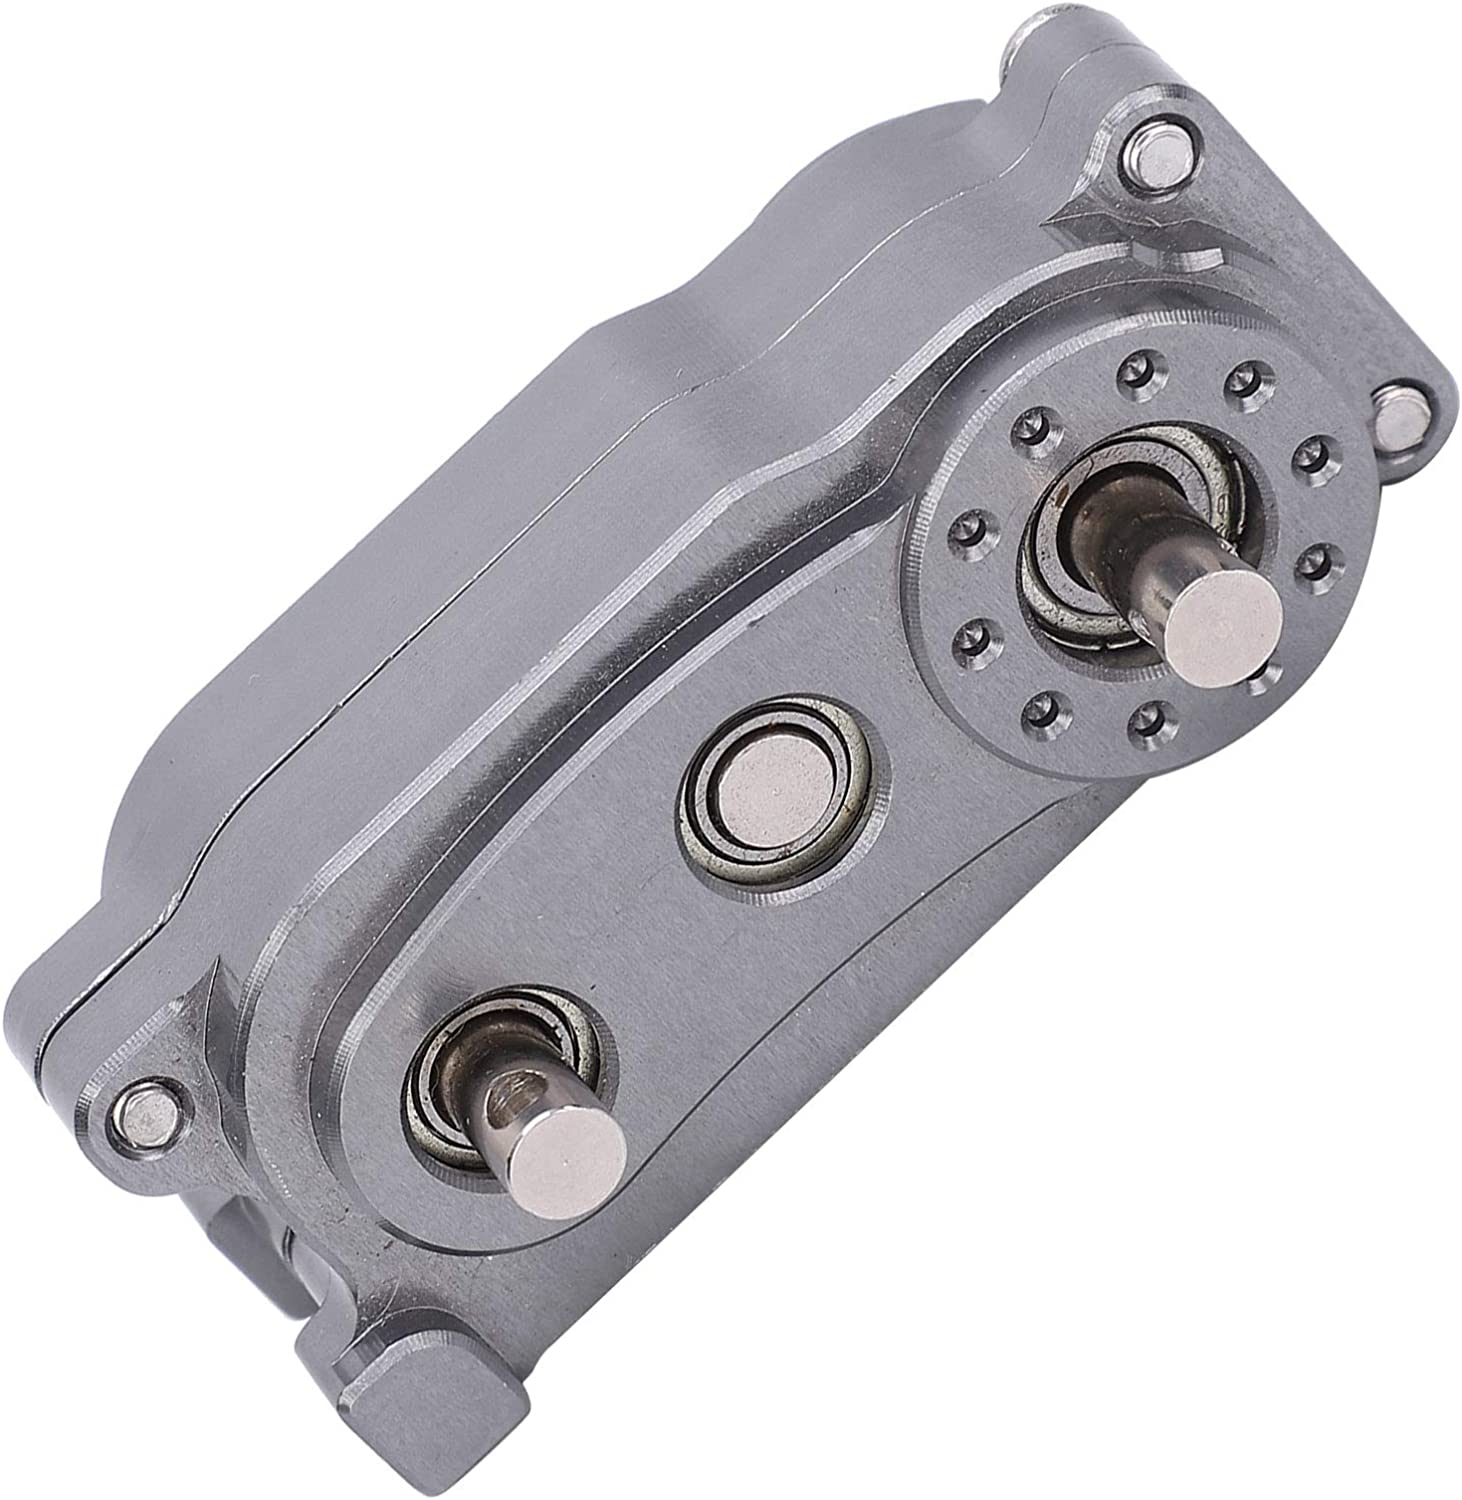 Ti Upgrade Components Parts Fit for 1//10 RC Crawler Car 313mm Wheelbase Metal Chassis Frame Transfer Case RC Crawler Transfer Case